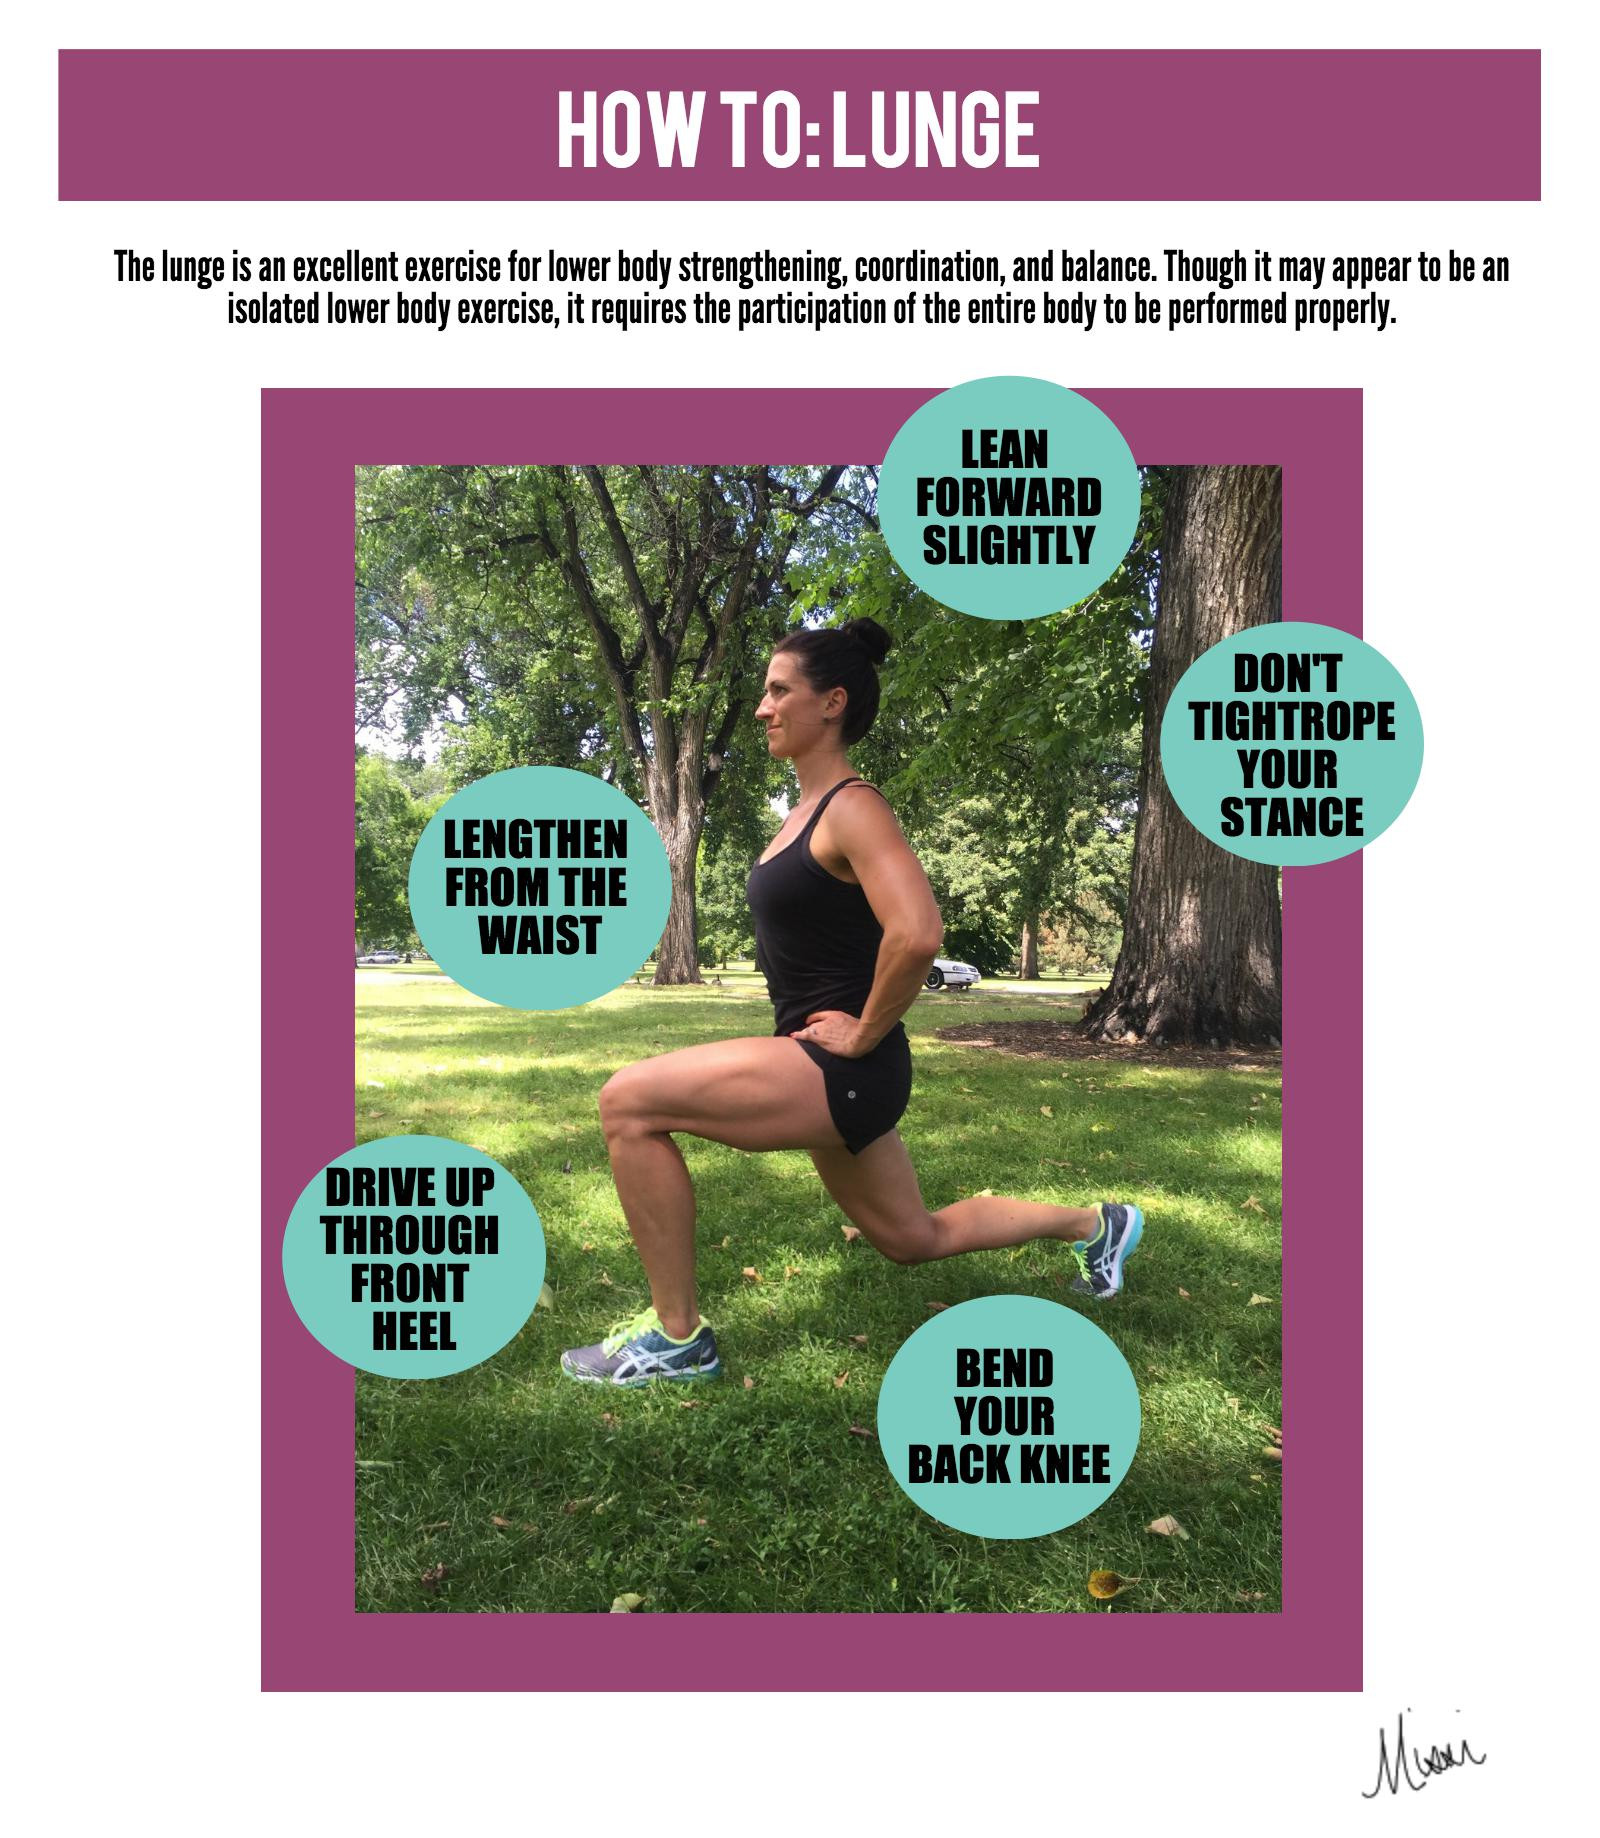 Missi lunge infographic